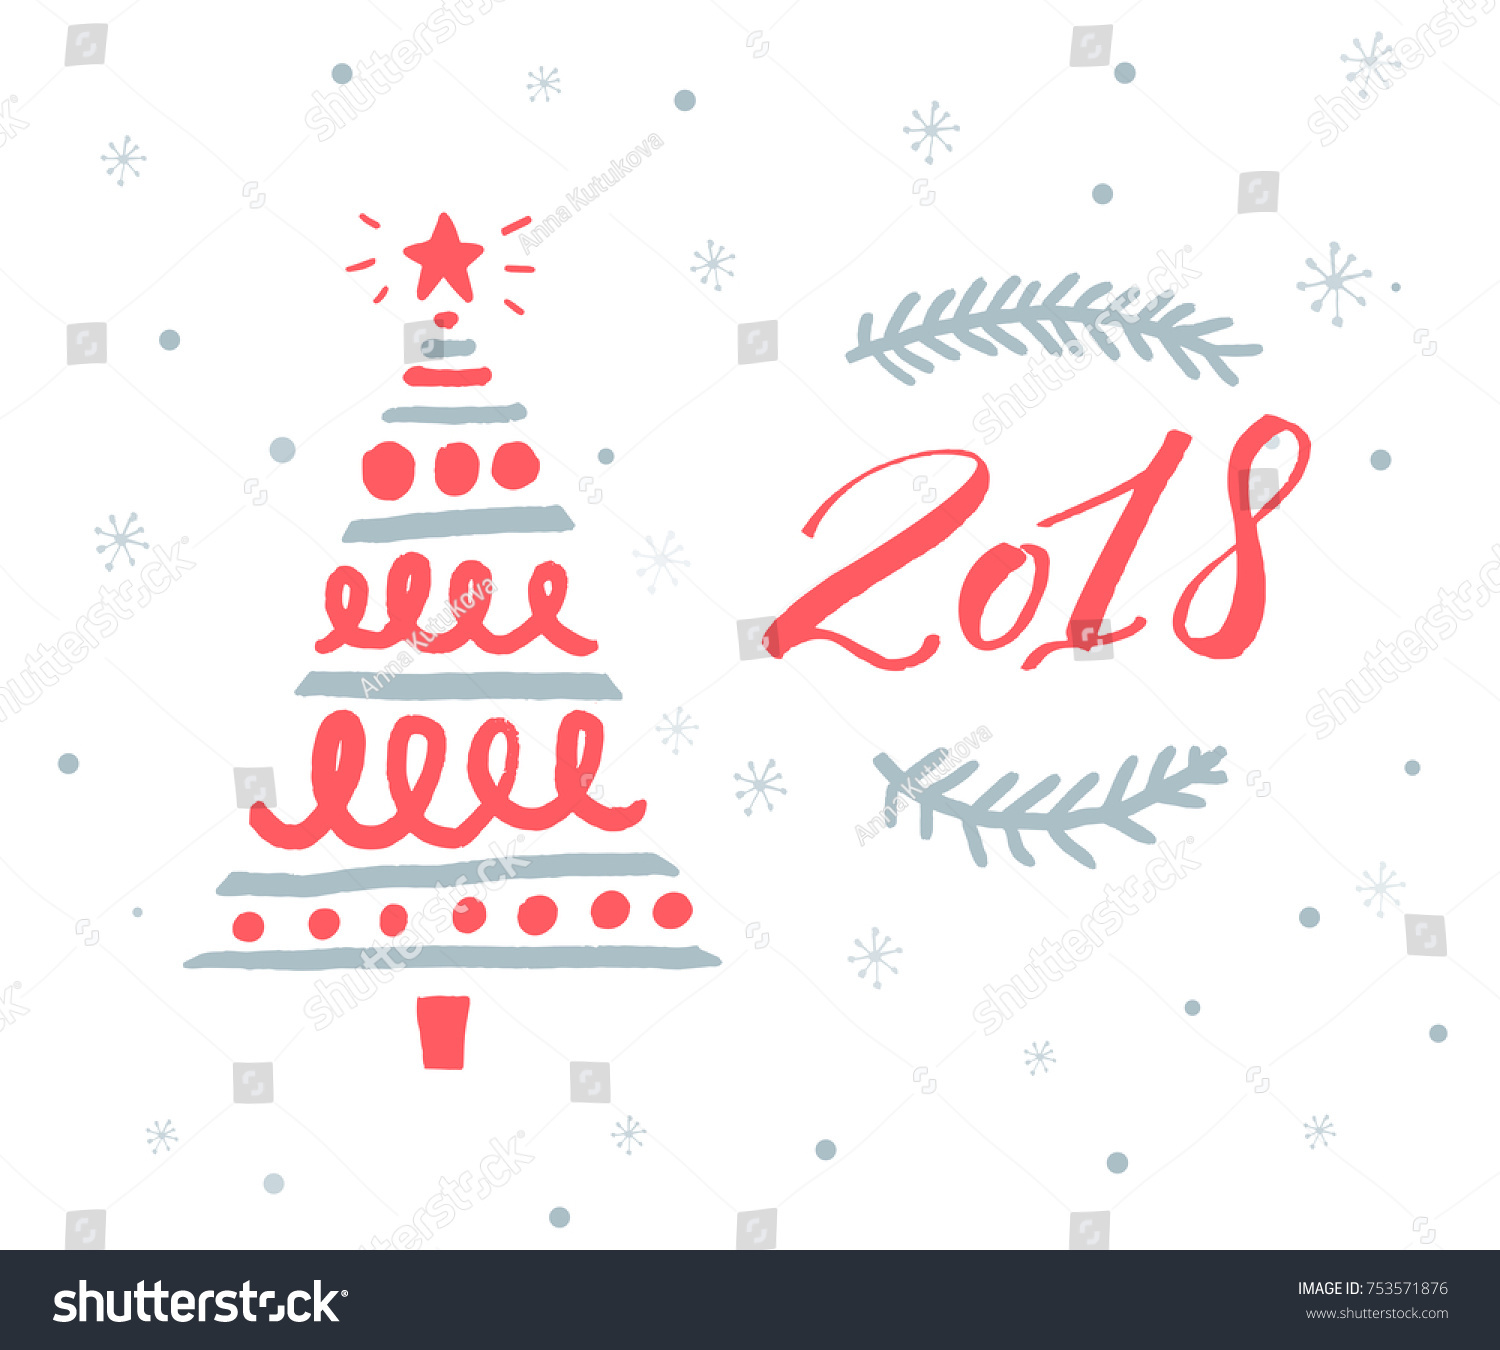 2018 new year greeting card template stock vector 753571876 2018 new year greeting card template with red numbers and hand drawn christmas tree m4hsunfo